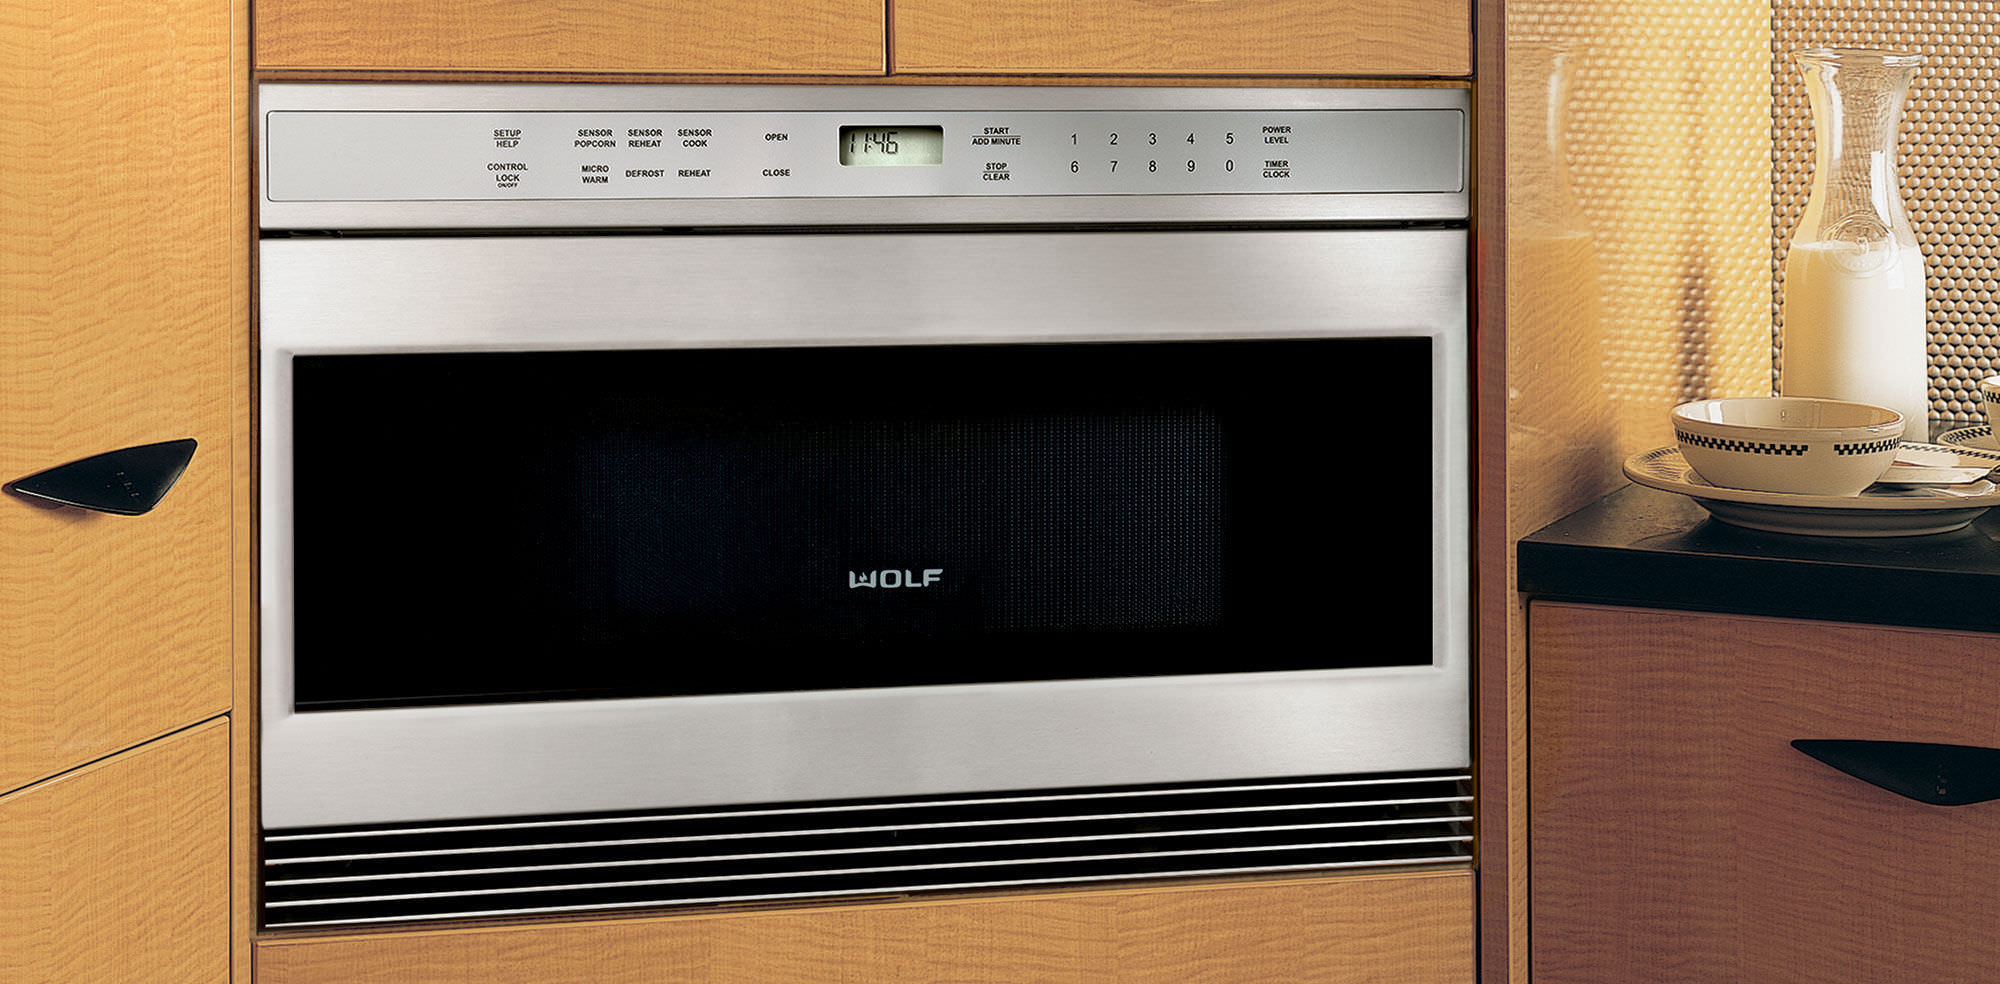 microwaves mobile appliance